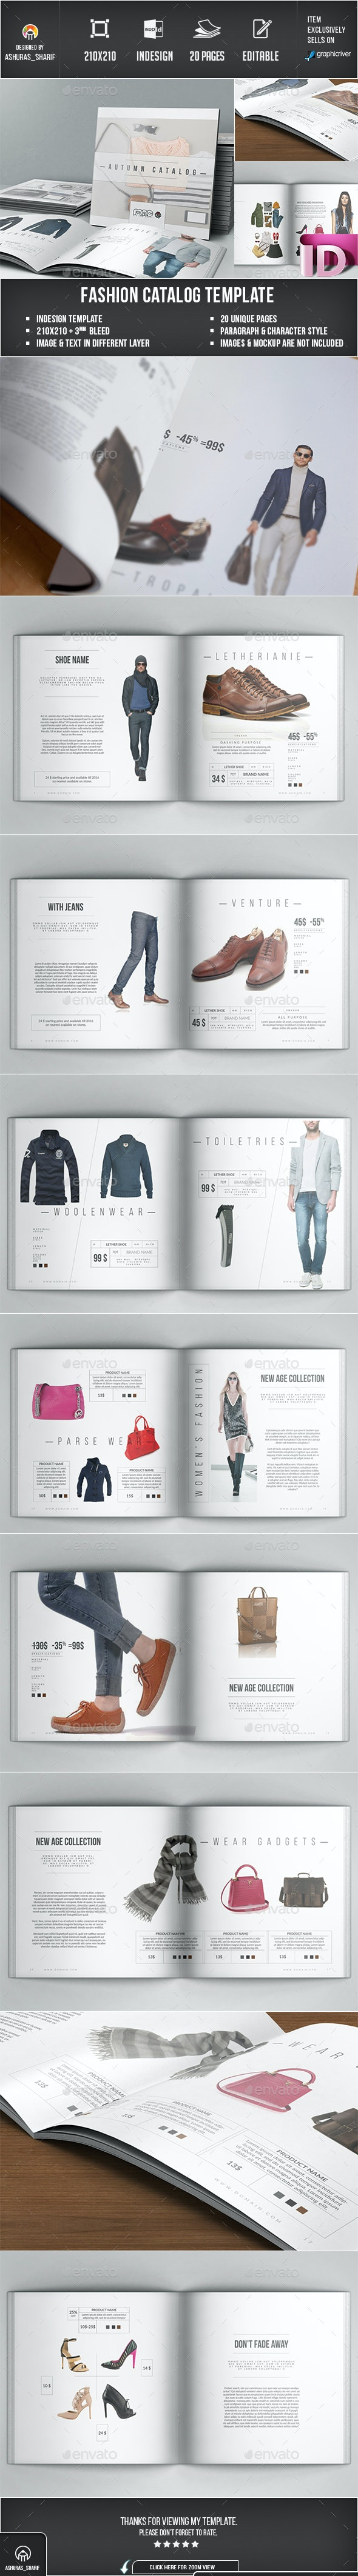 Product Catalog - Catalogs Brochures